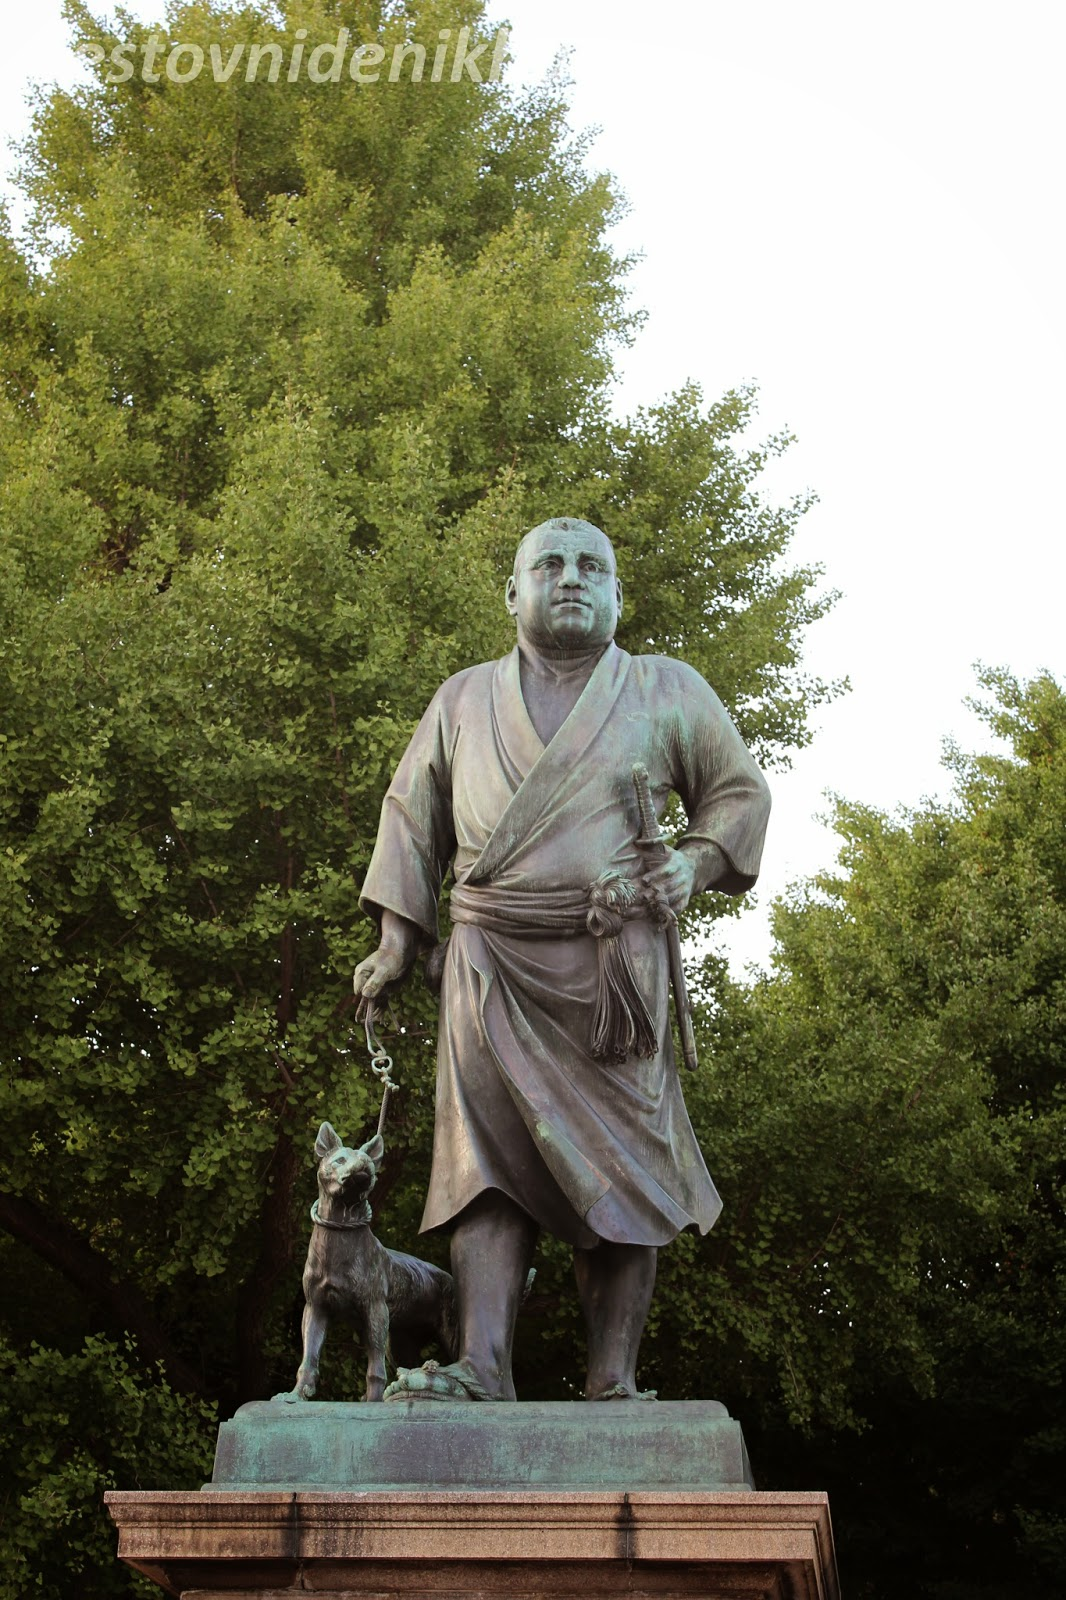 the statue of Saigo Takamori